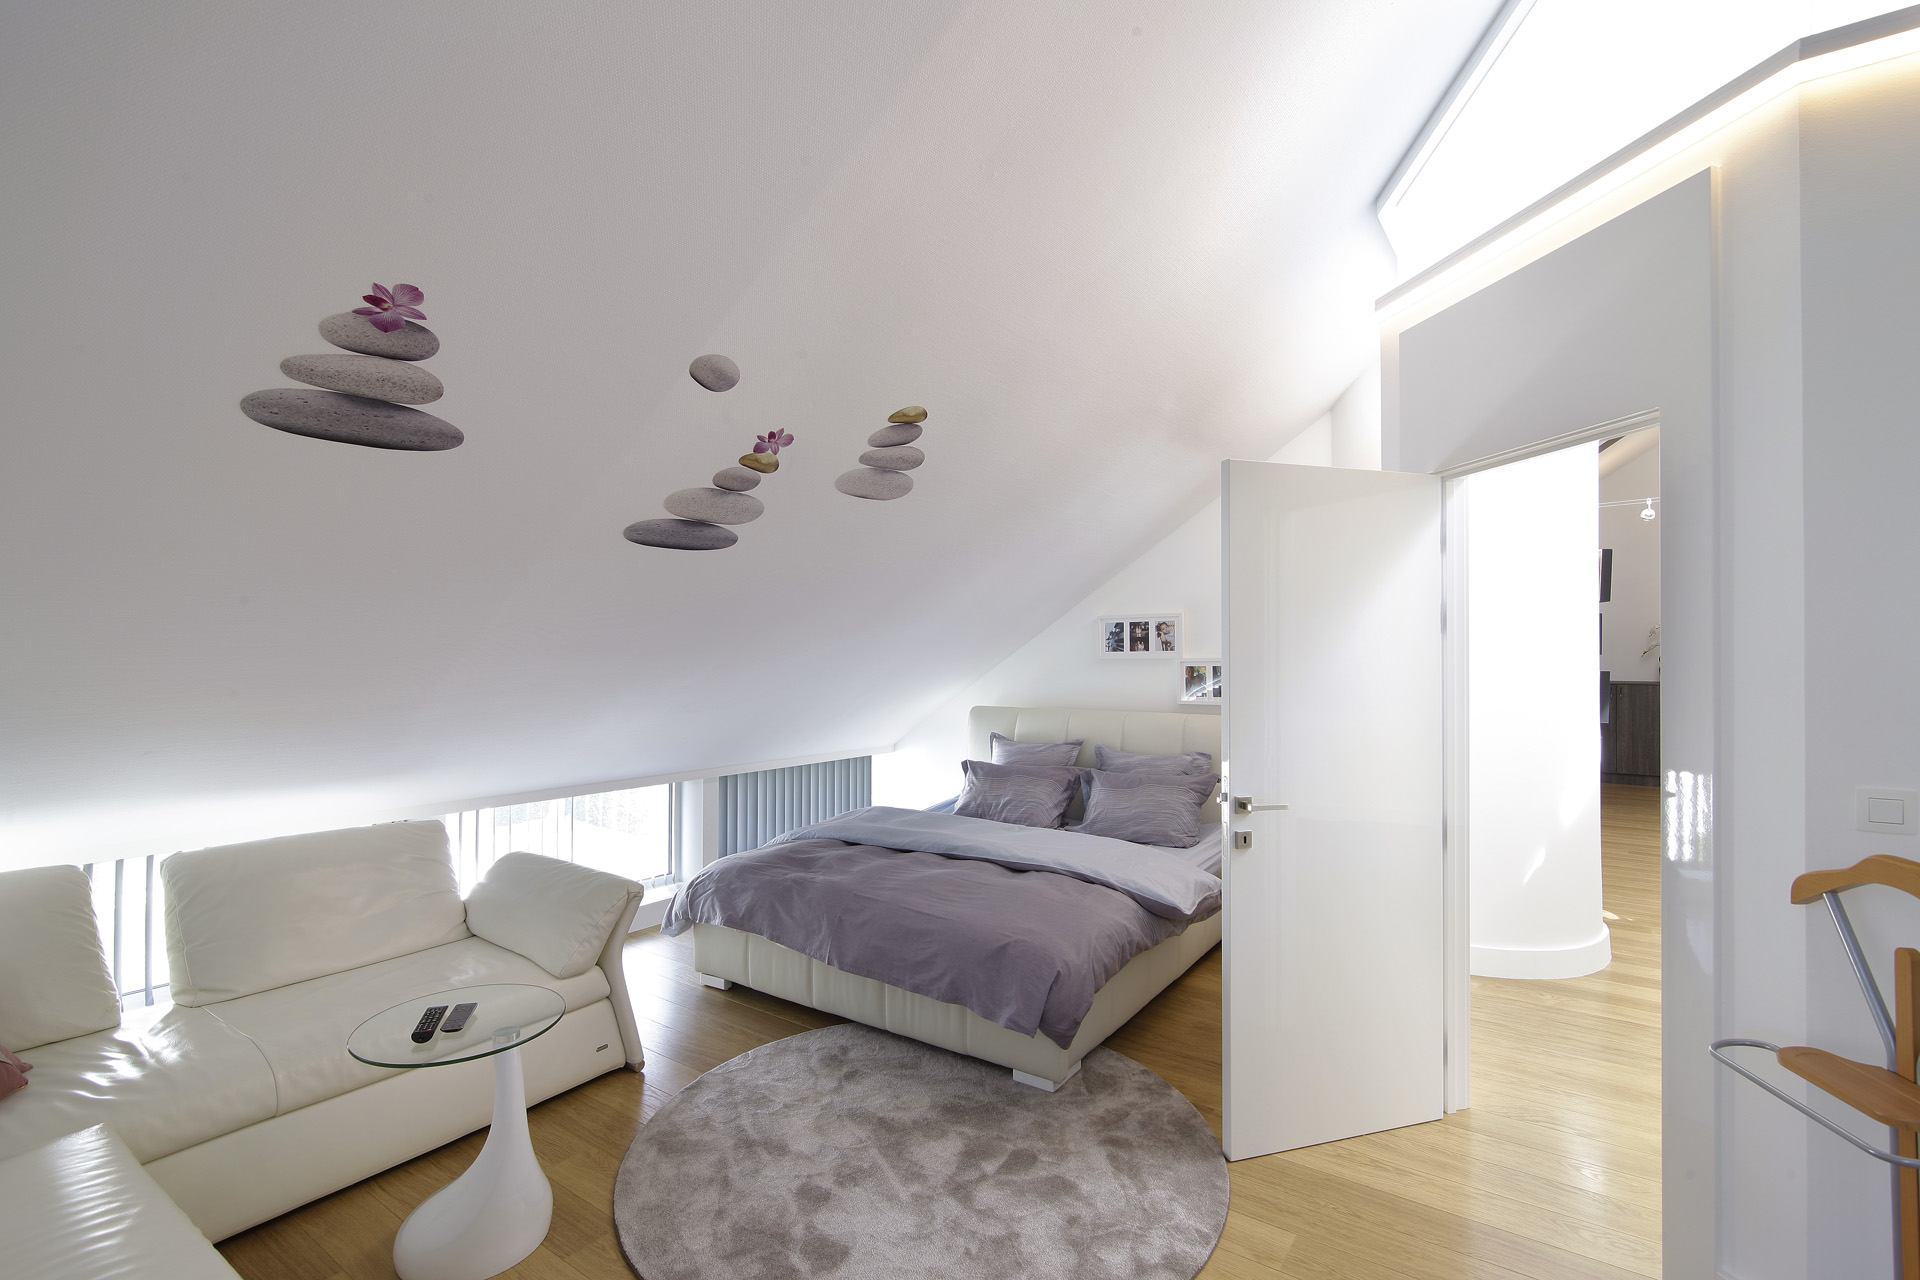 Chambre coucher marcotte style - Style chambre a coucher ...